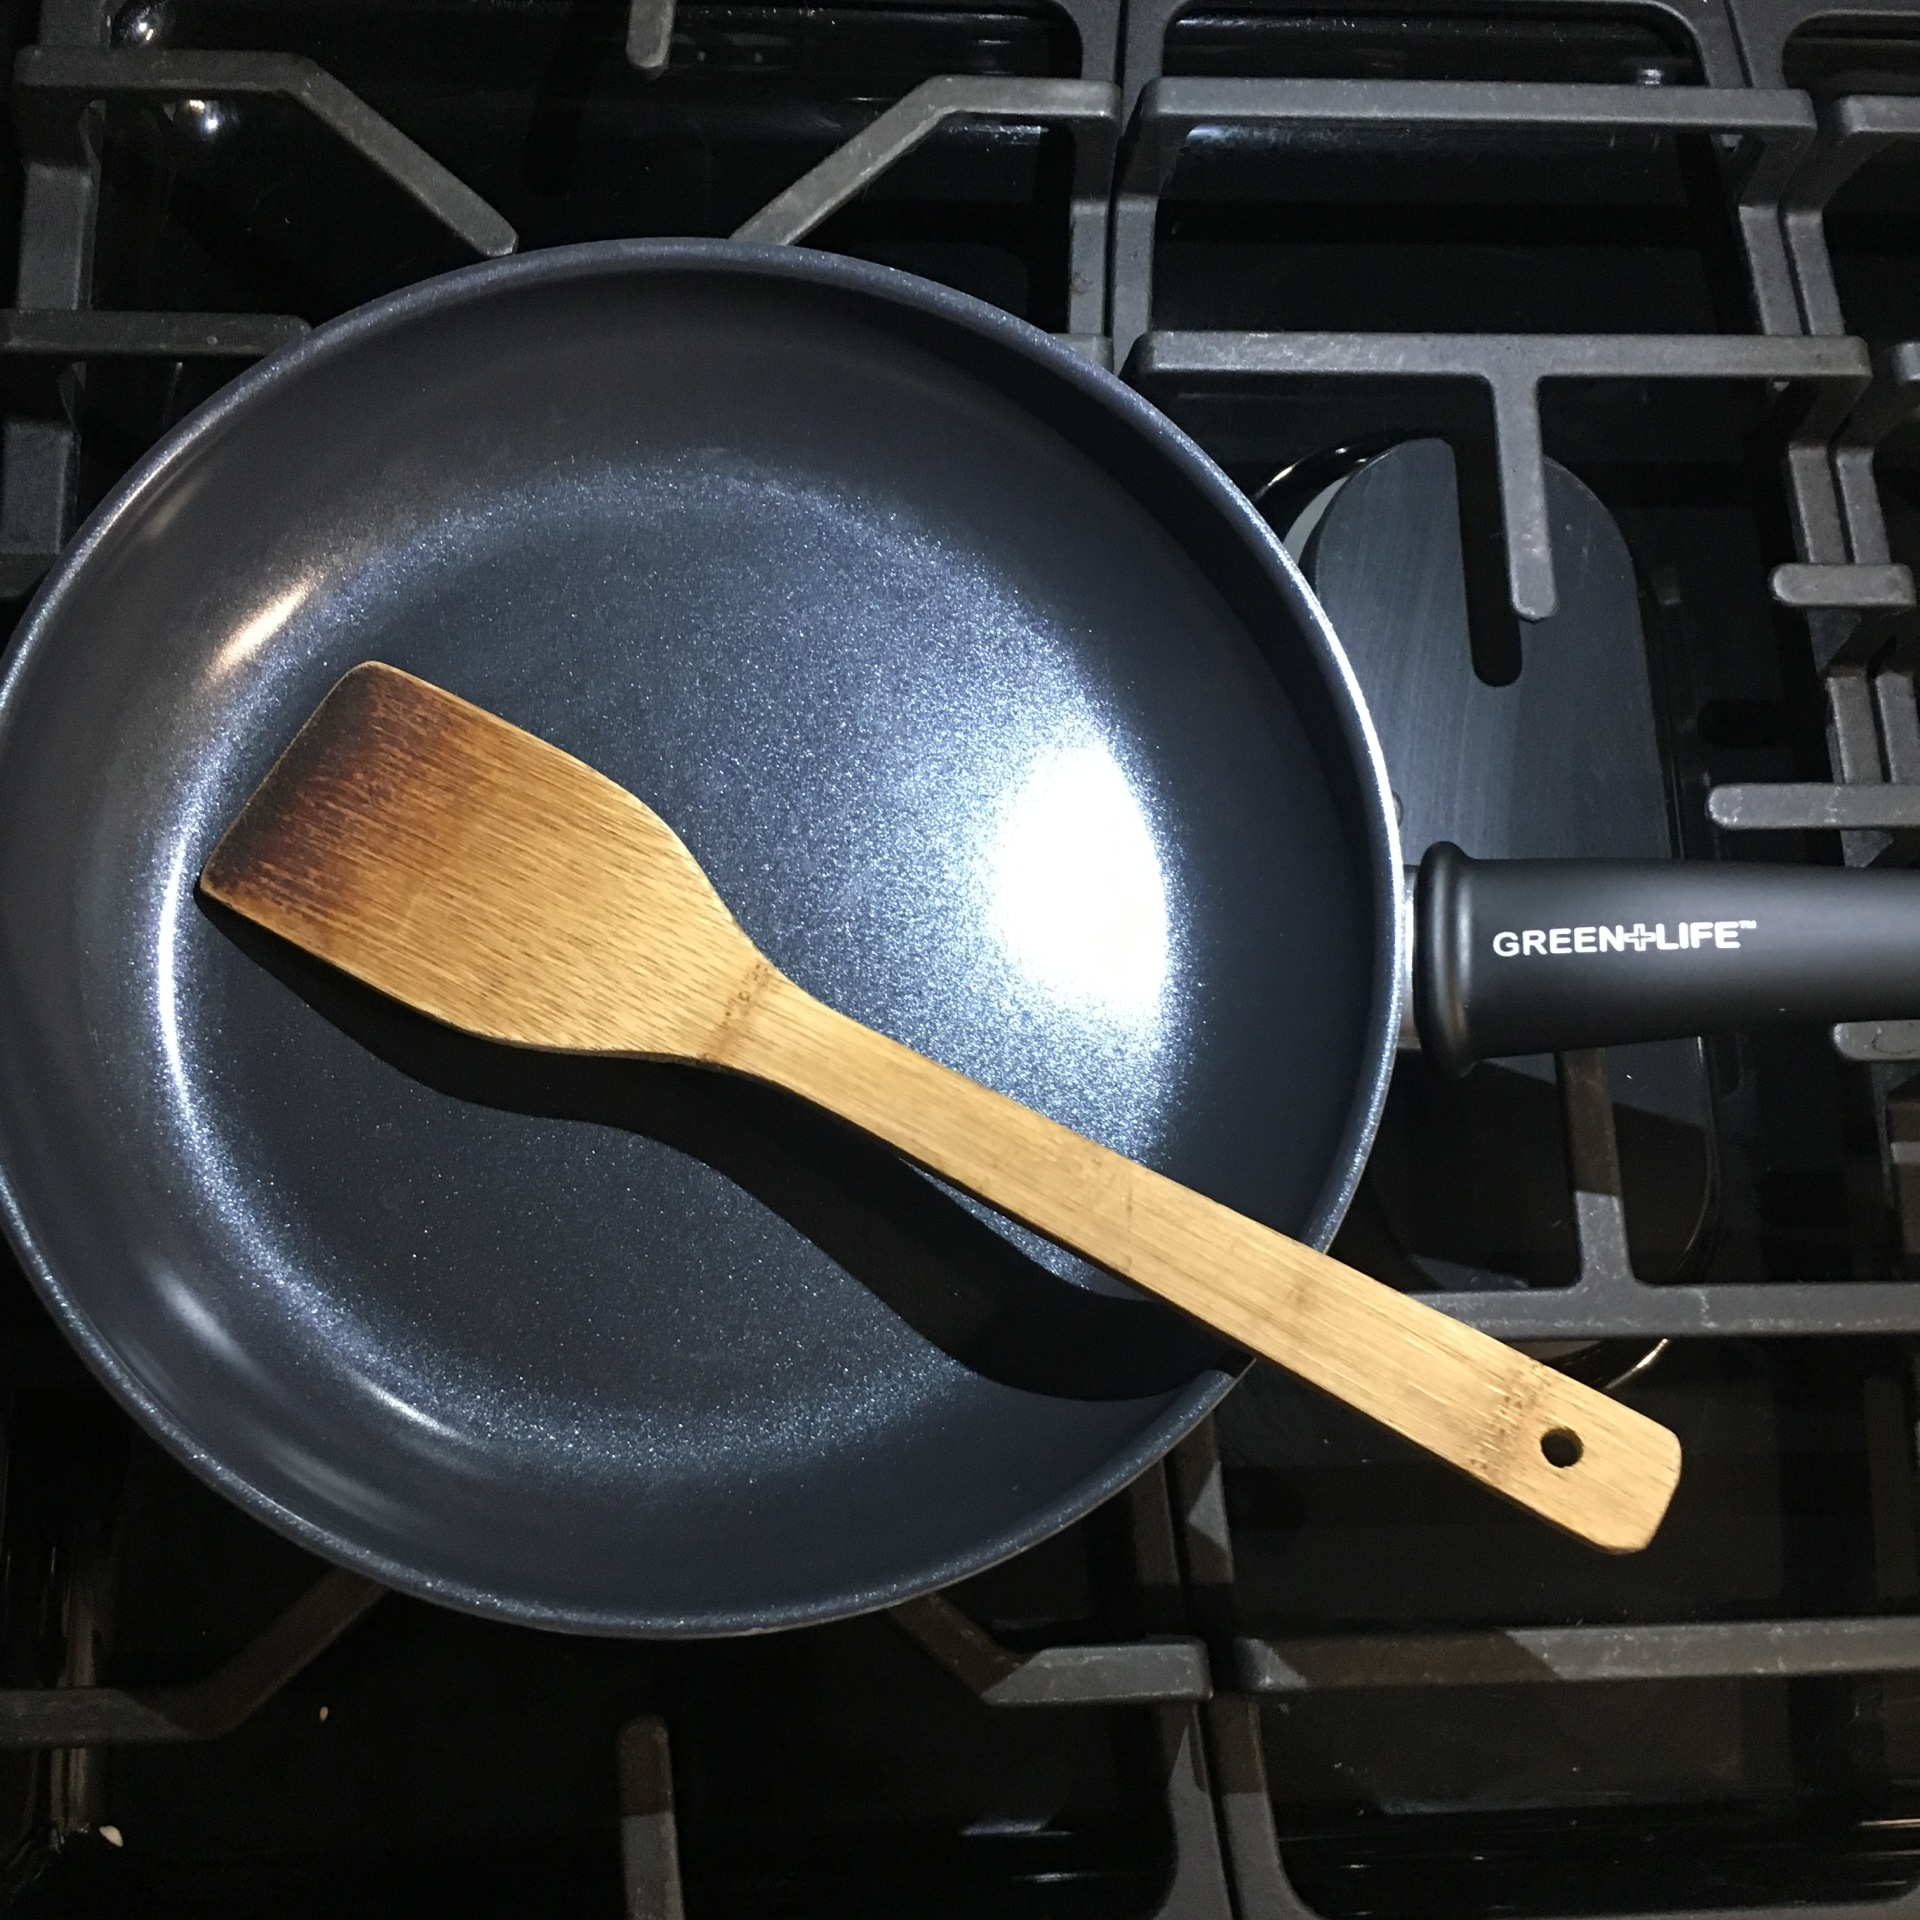 It's Not Just The Food You Eat, But The Pans You Cook With